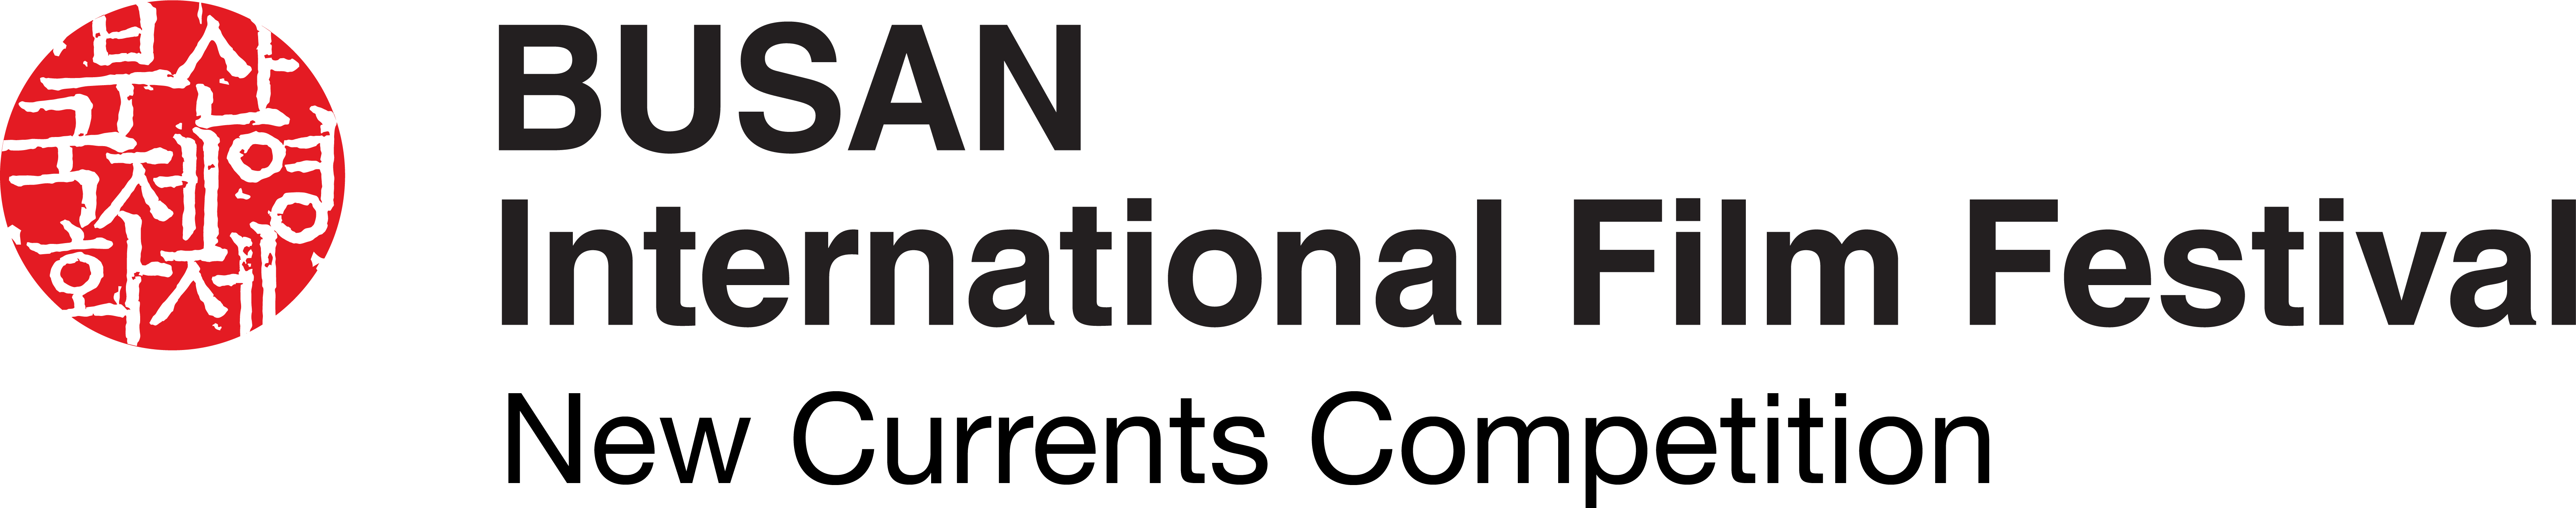 2021 Busan International Film Festival (New Currents Competition)